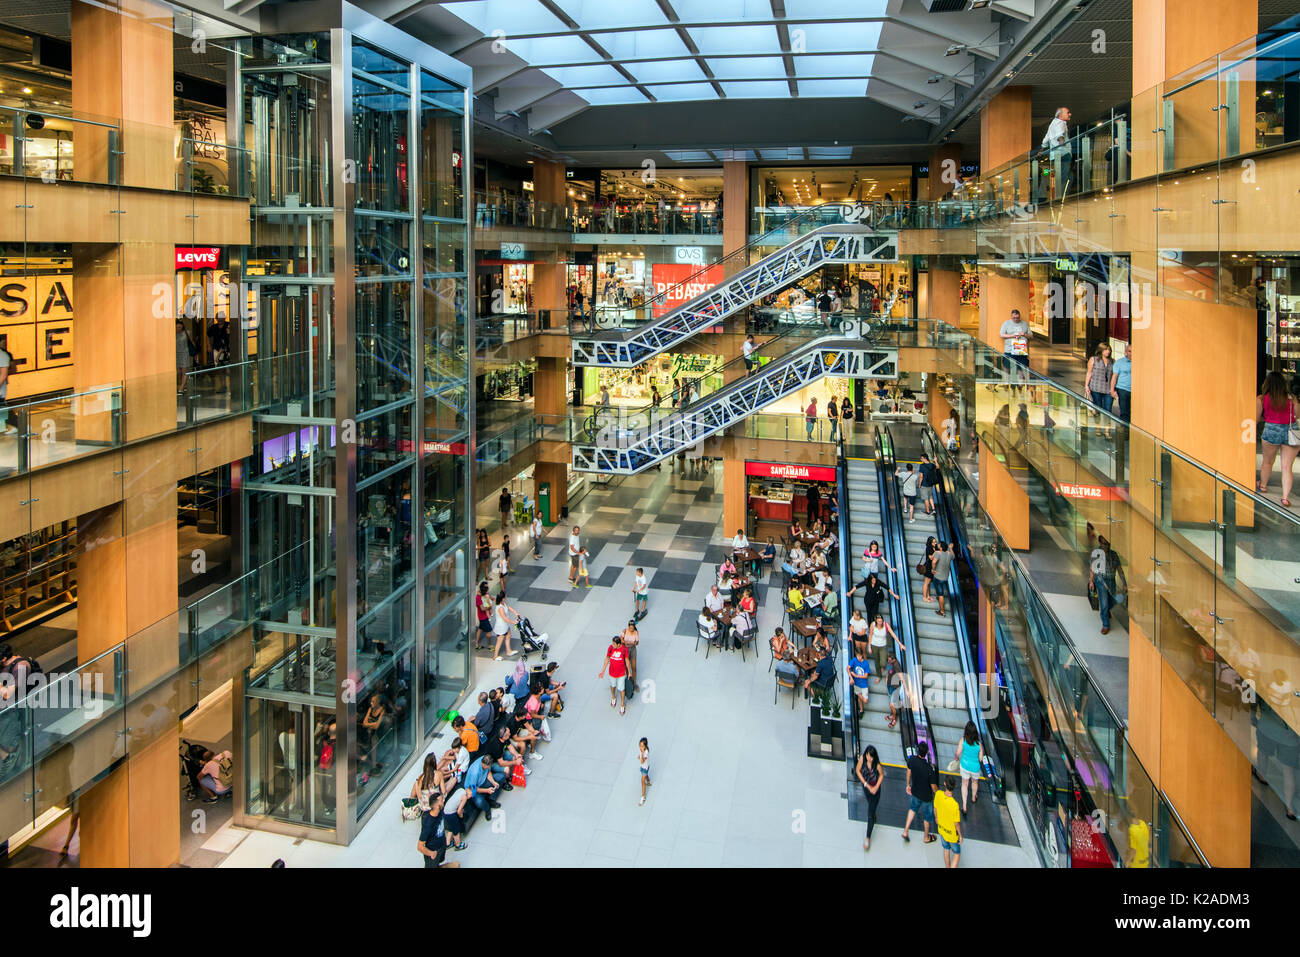 Andorra shopping centre pyrenees stock photos andorra shopping centre pyrenees stock images - Centro comercial illa diagonal ...